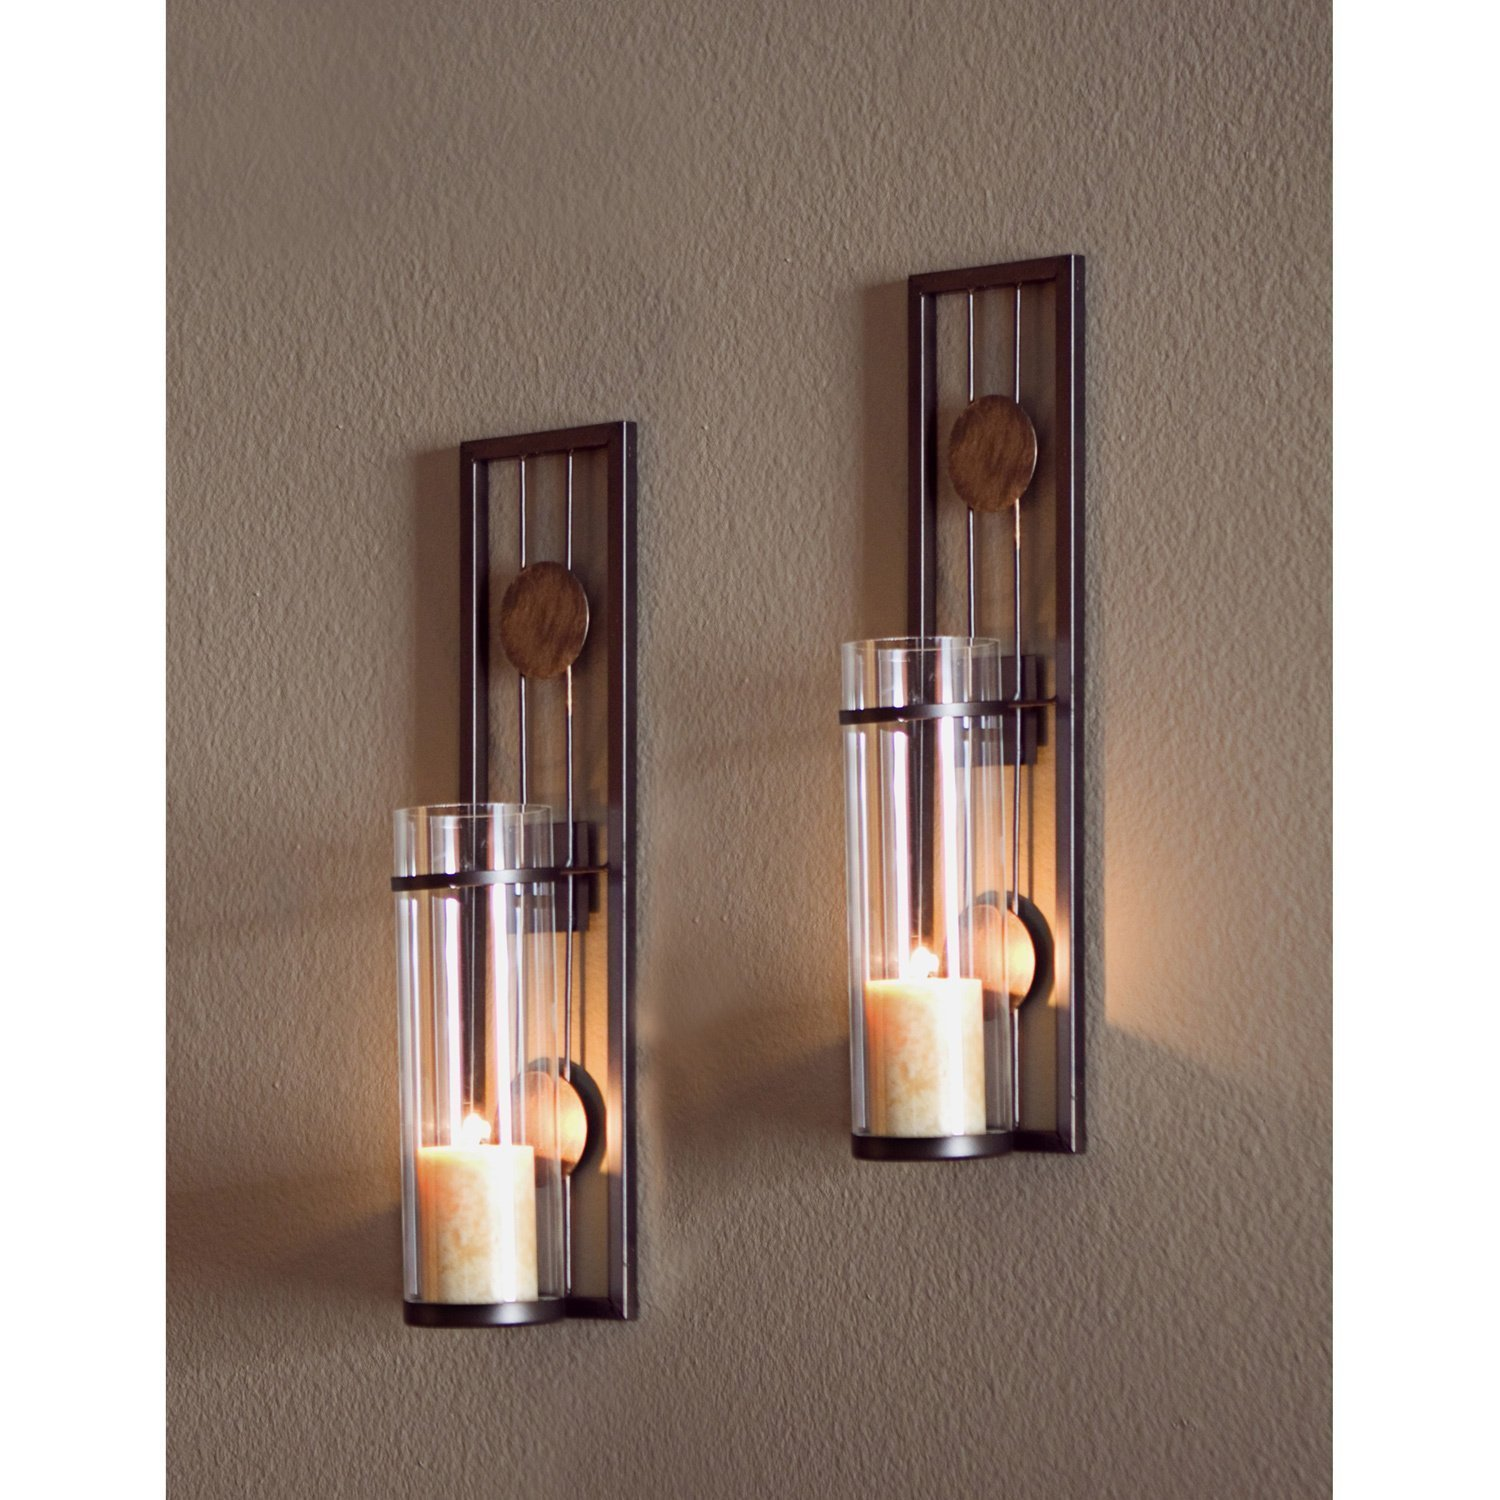 Candle Wall Sconce Set of 2 and Classic Pillar Real Flame-Effect Flameless LED Candles Set 6'' X 2.15'' with Remote and Timer Feature White Color - Set of 2 Metal Iron Glass Home Decor Room Bronze